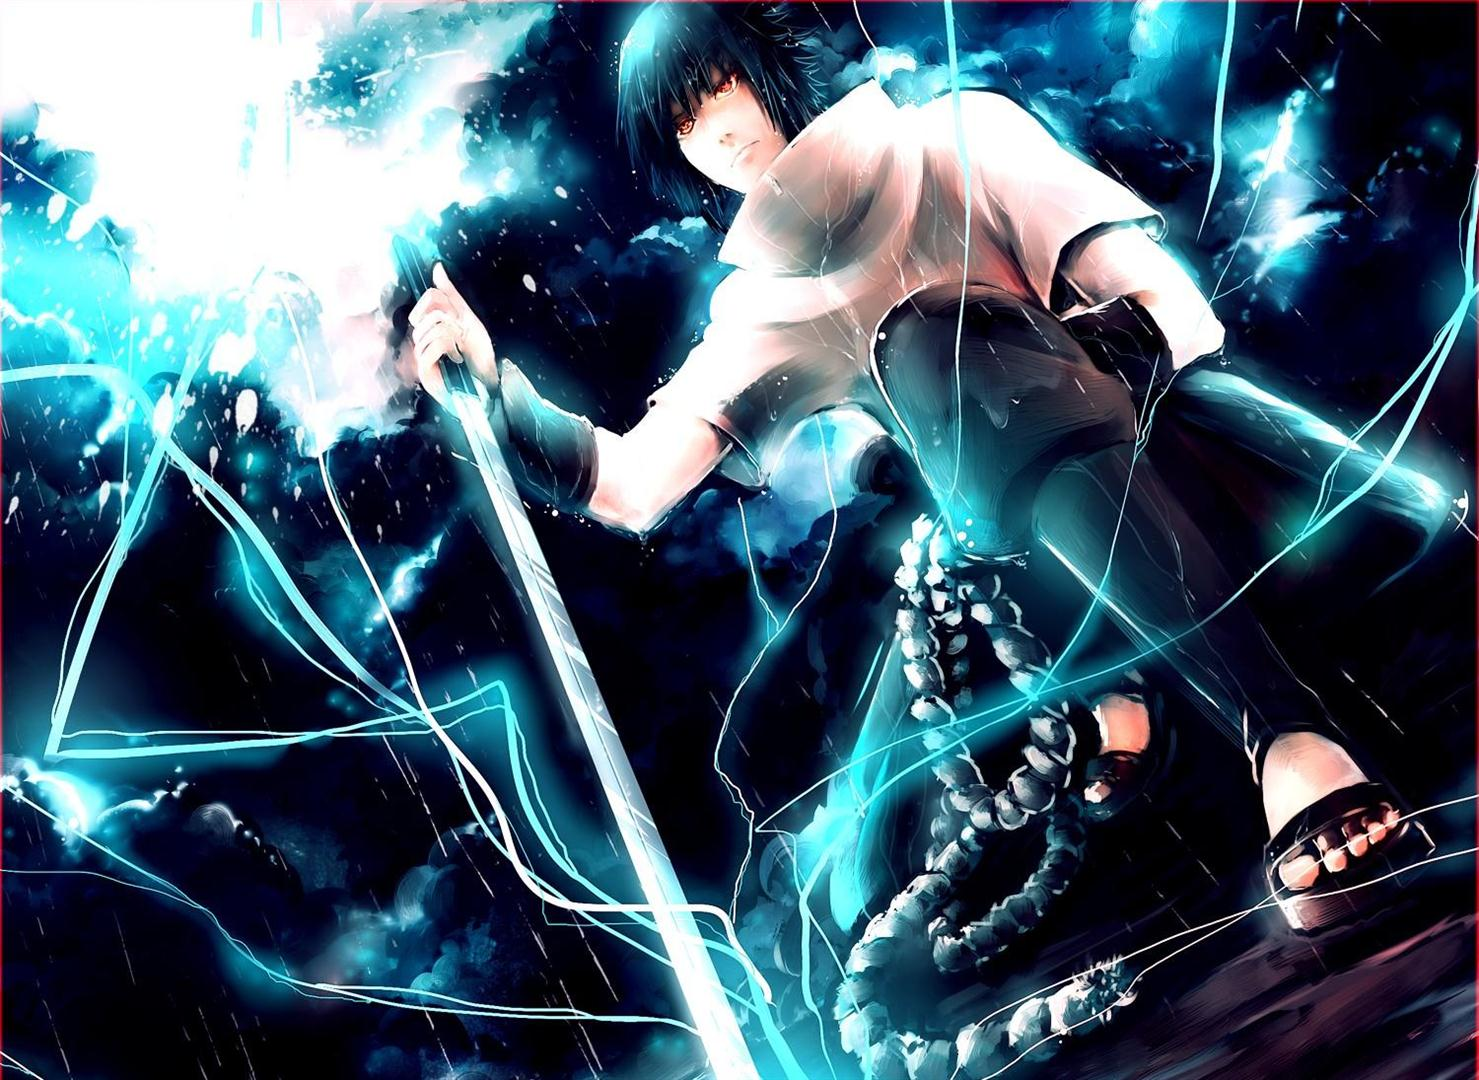 Image uchiha sasuke wallpaper hdg vs battles wiki fandom uchiha sasuke wallpaper hdg voltagebd Image collections